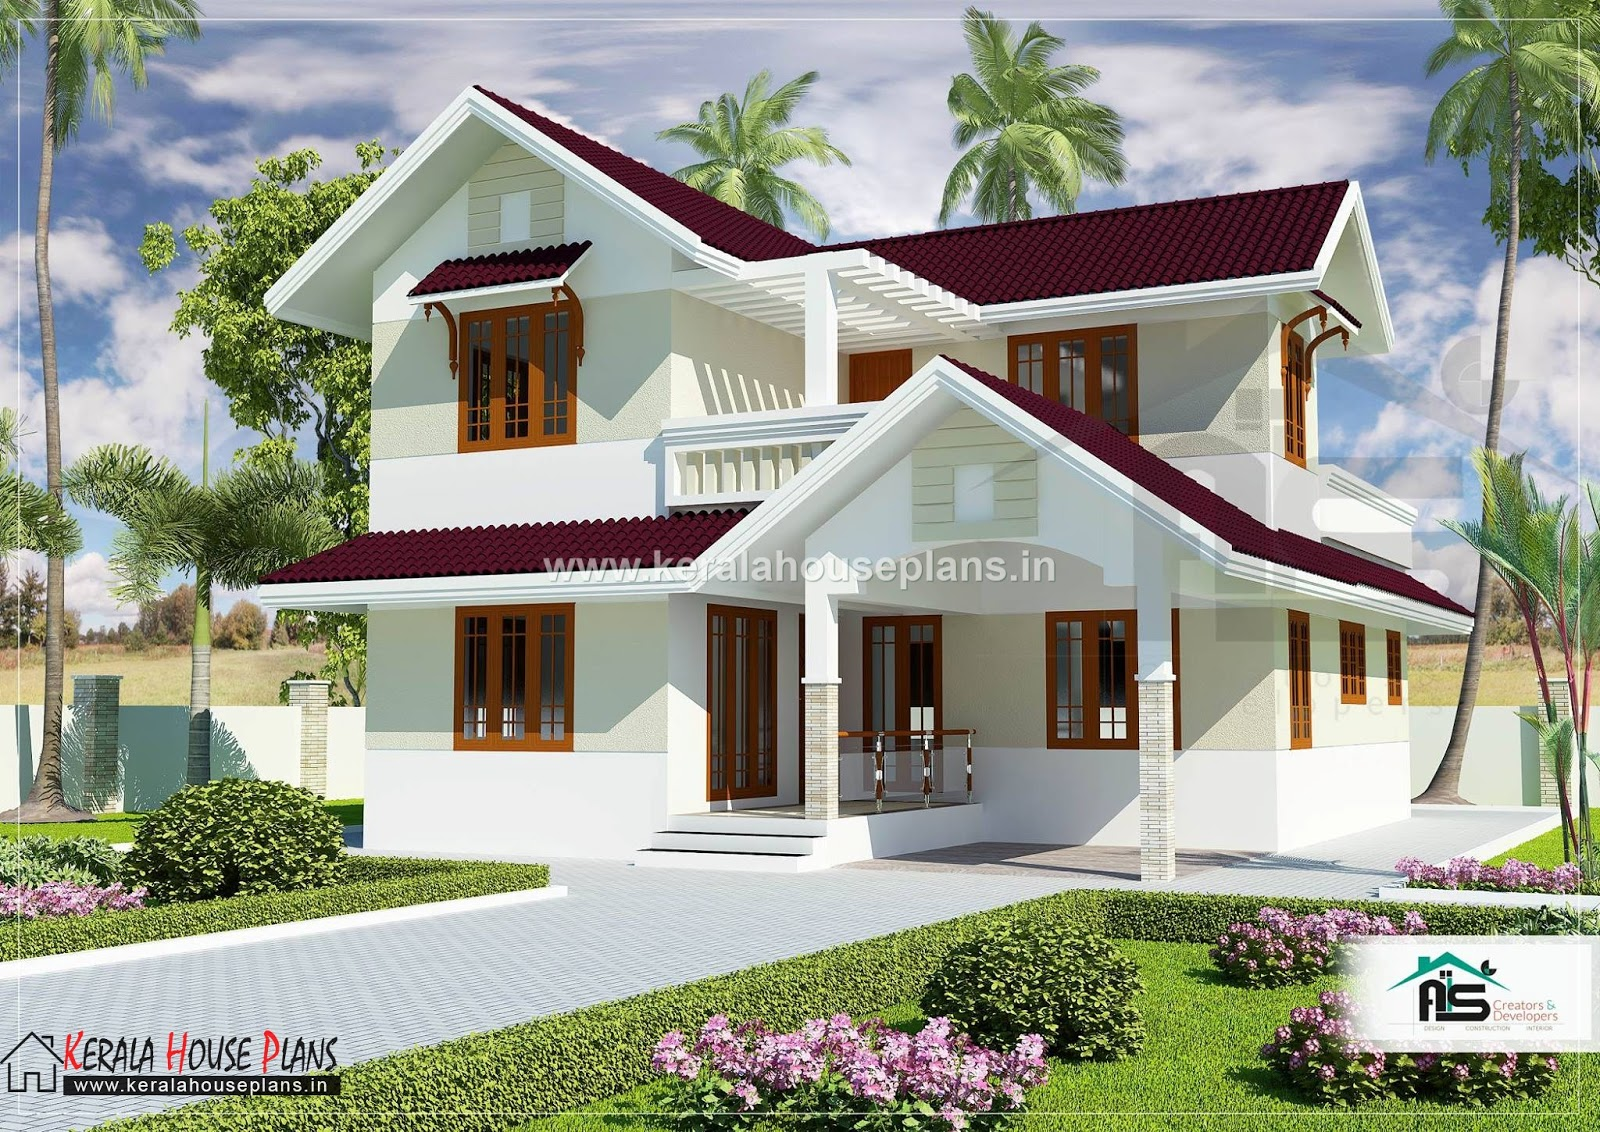 Kerala model house plans with elevation 1829 sqft kerala for Model house design